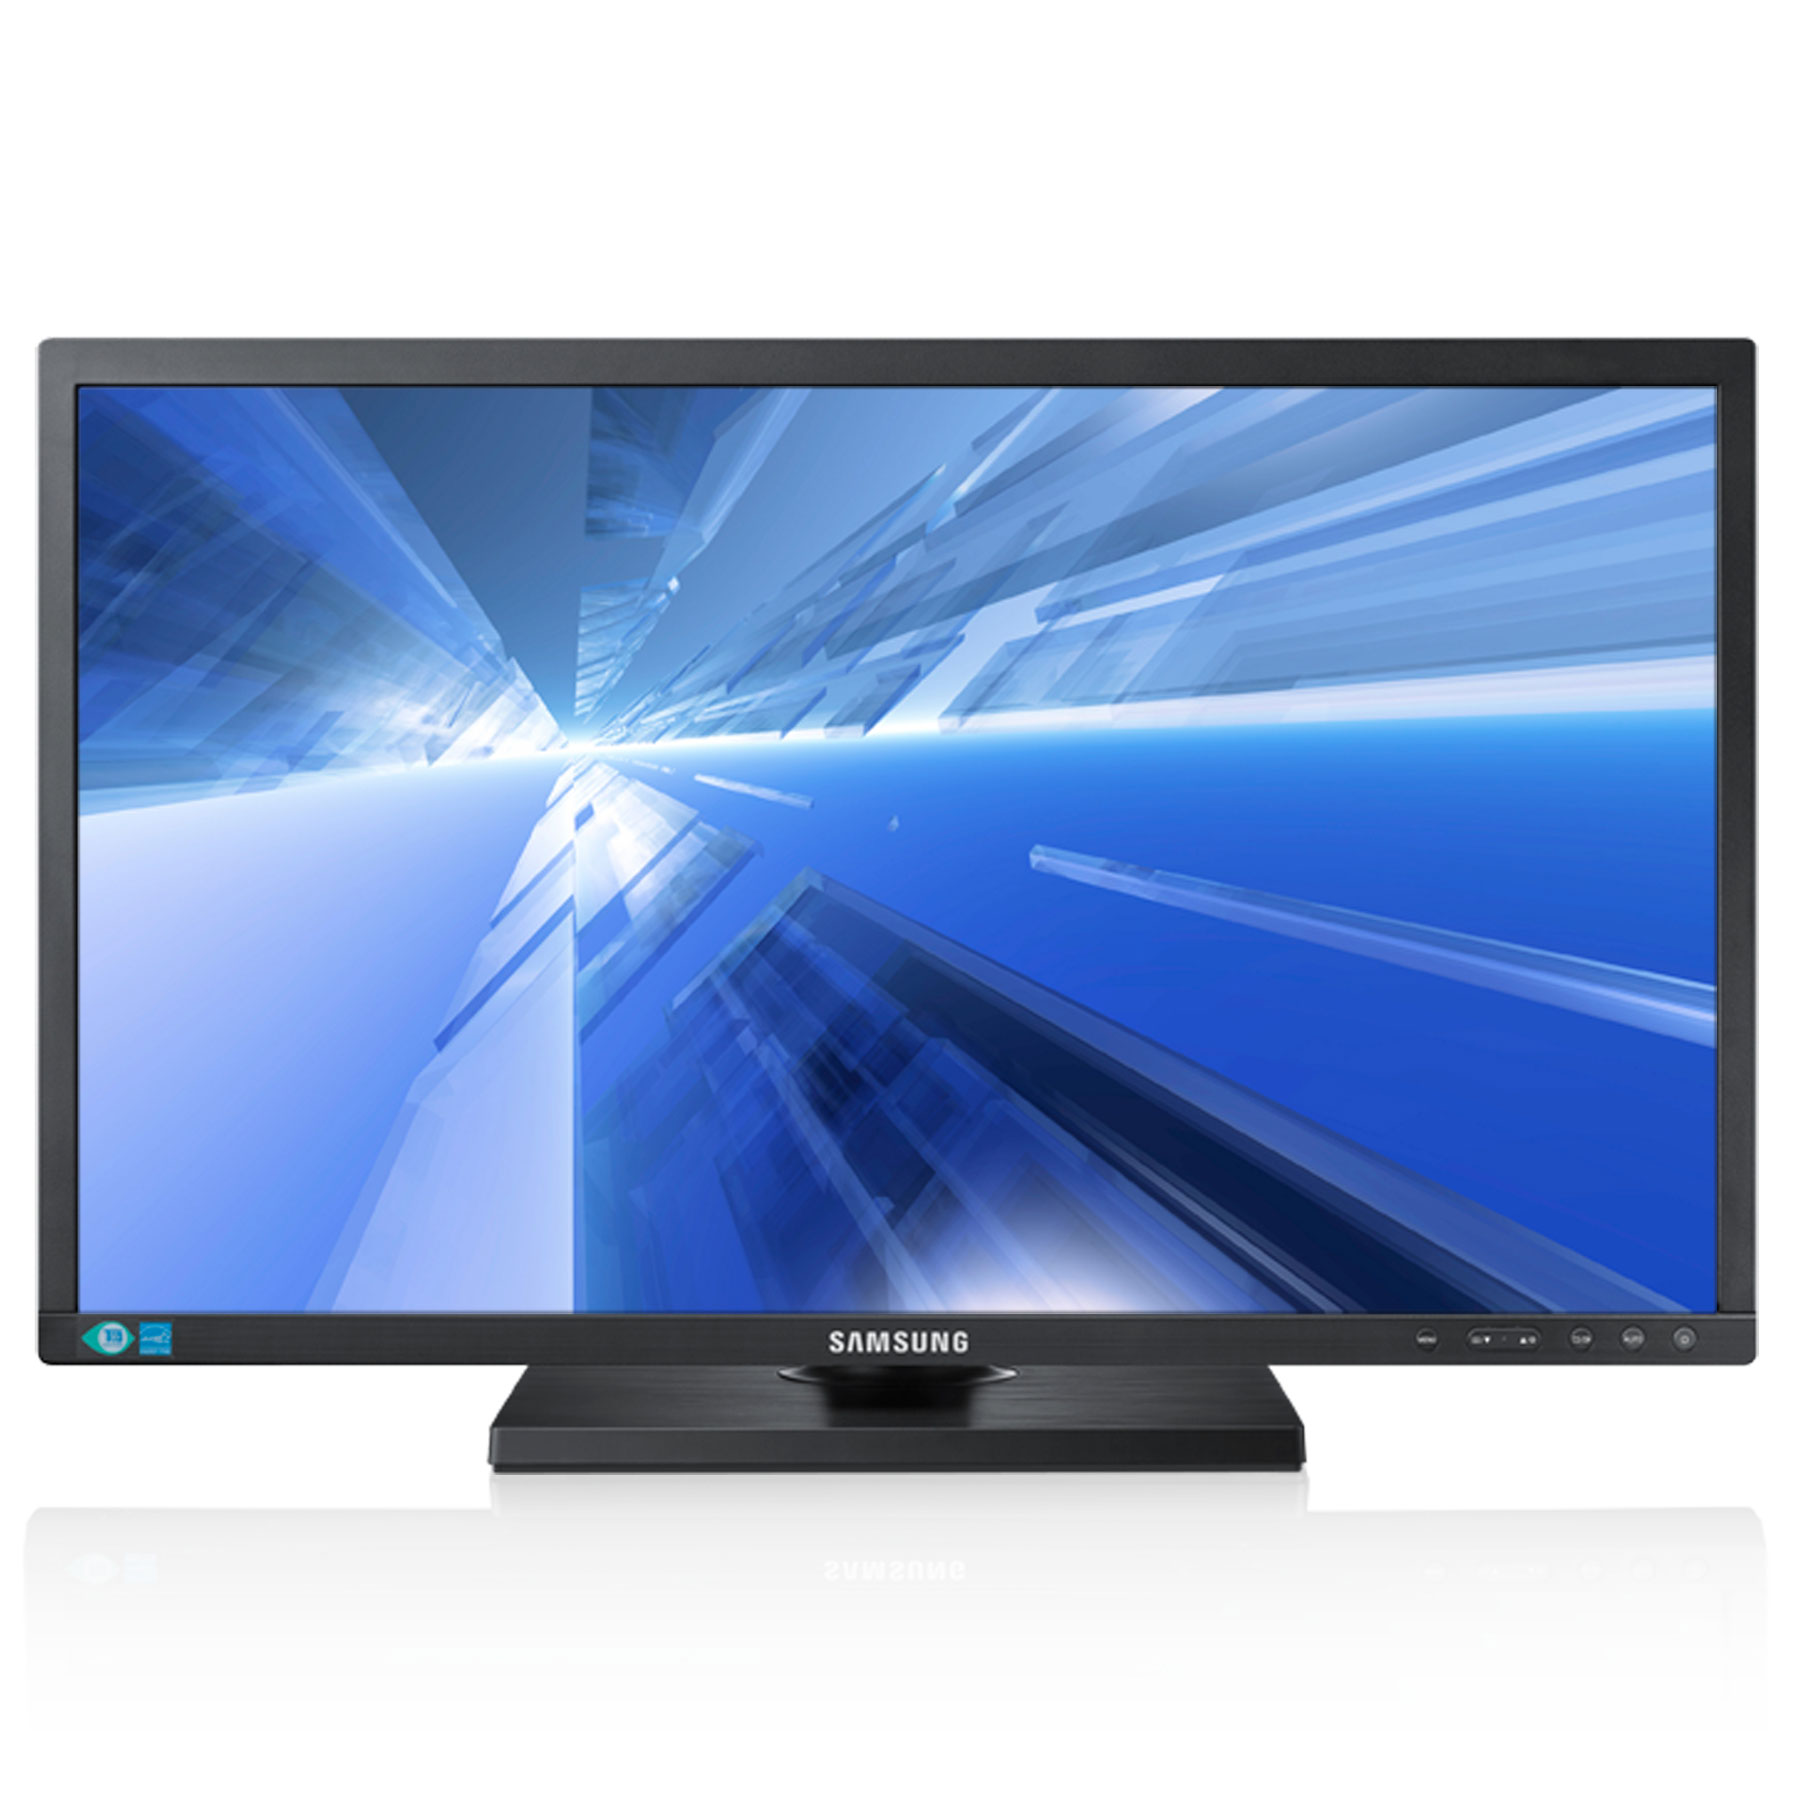 samsung 23 6 led syncmaster s24c650pl ecran pc samsung sur ldlc. Black Bedroom Furniture Sets. Home Design Ideas